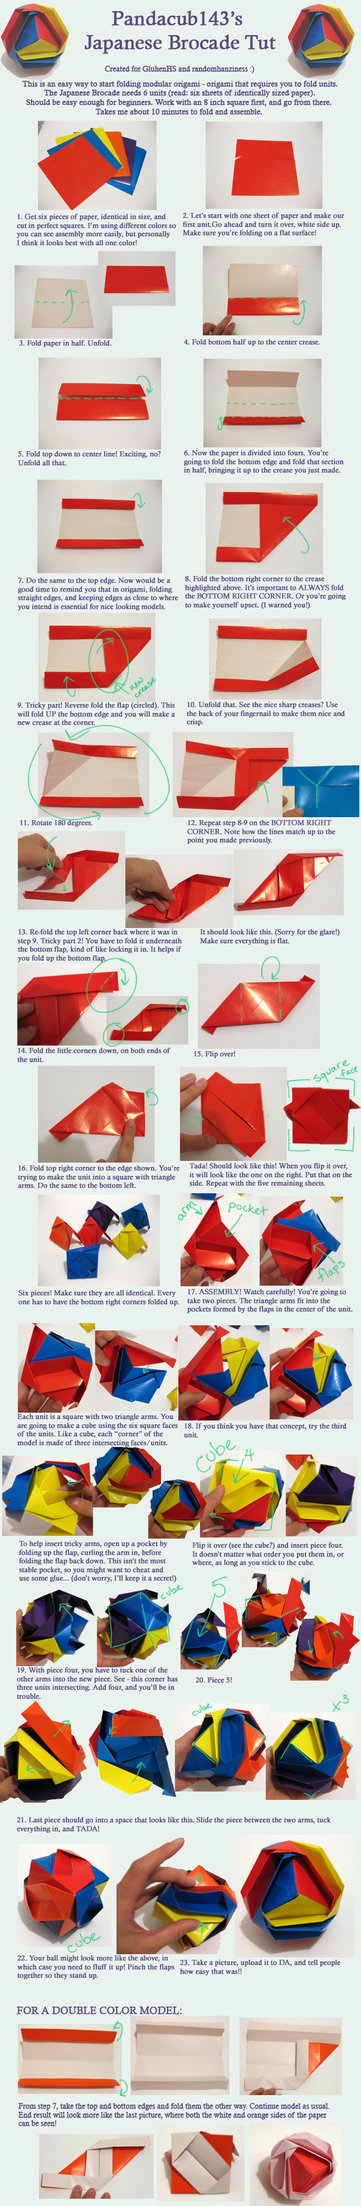 Origami Brocade Tutorial By Pandacub143 On Deviantart Origami Origami Diagrams Origami Tutorial